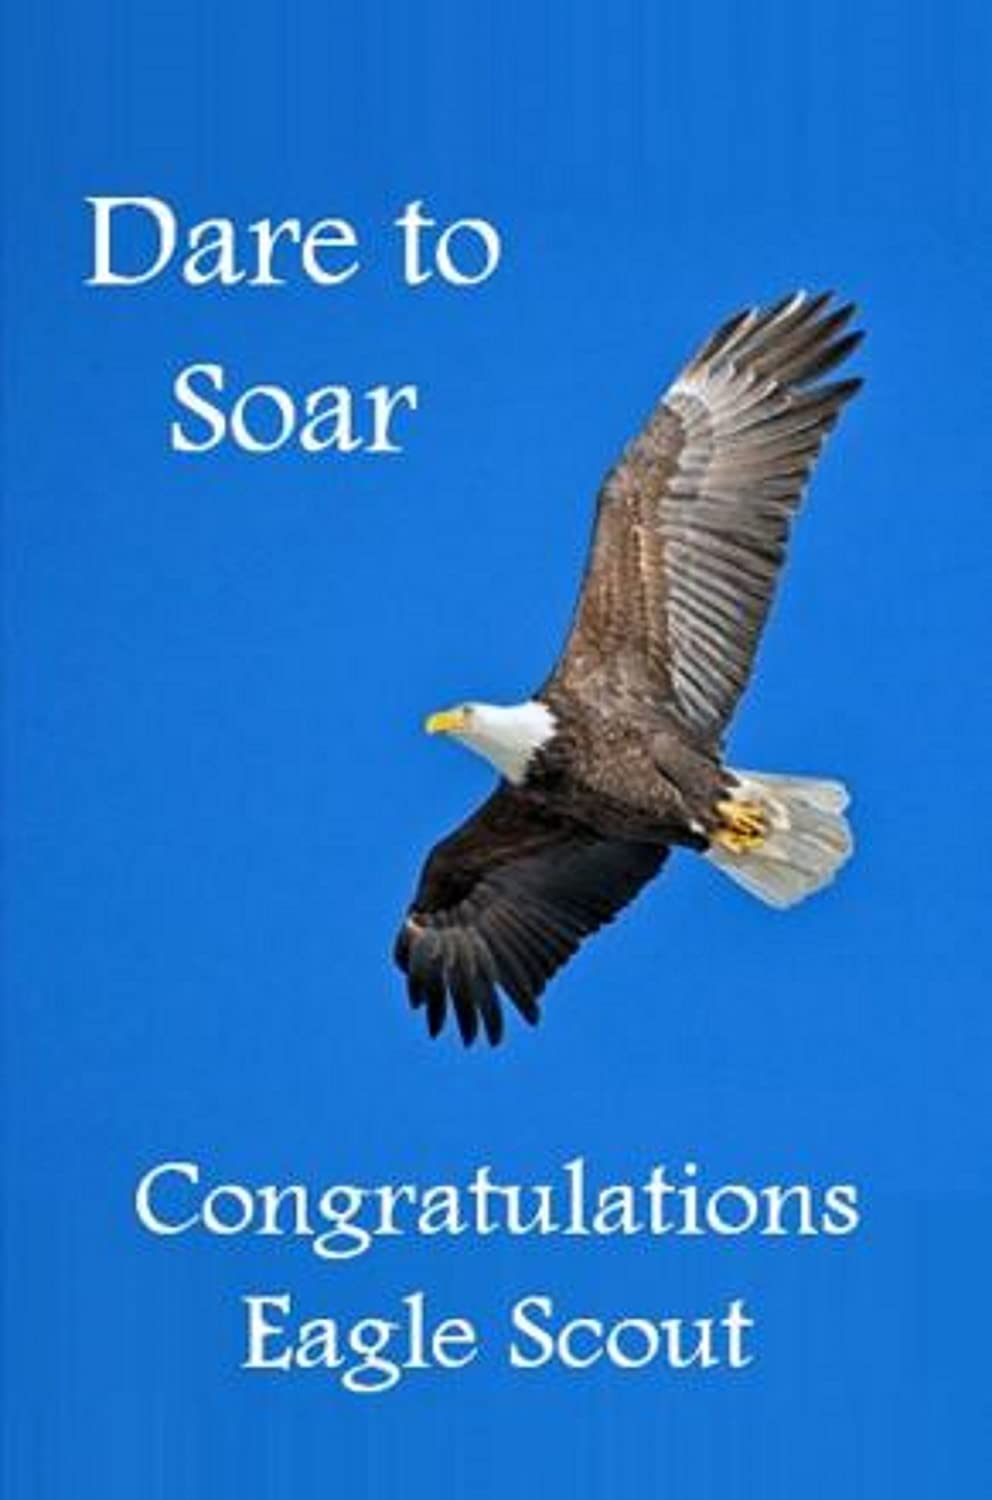 photograph relating to Eagle Scout Congratulations Card Printable identify Eagle Scout Congratulations Card: Dare in the direction of Jump